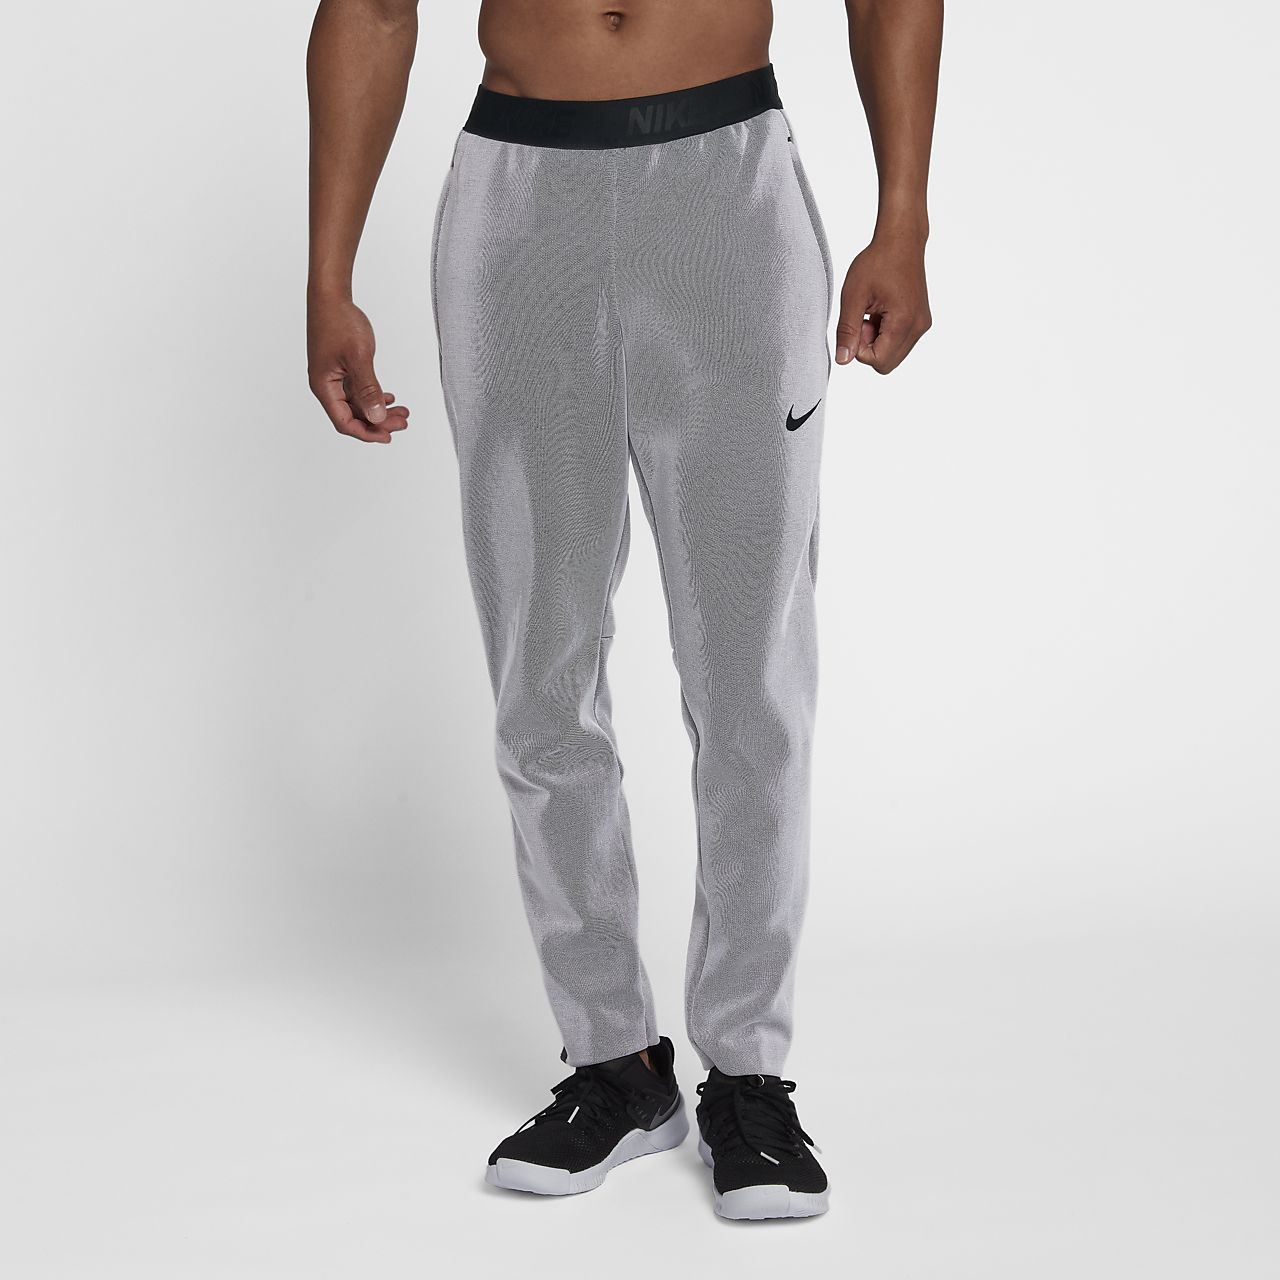 NIKE Herren Trainingshose Therma Sphere Max: